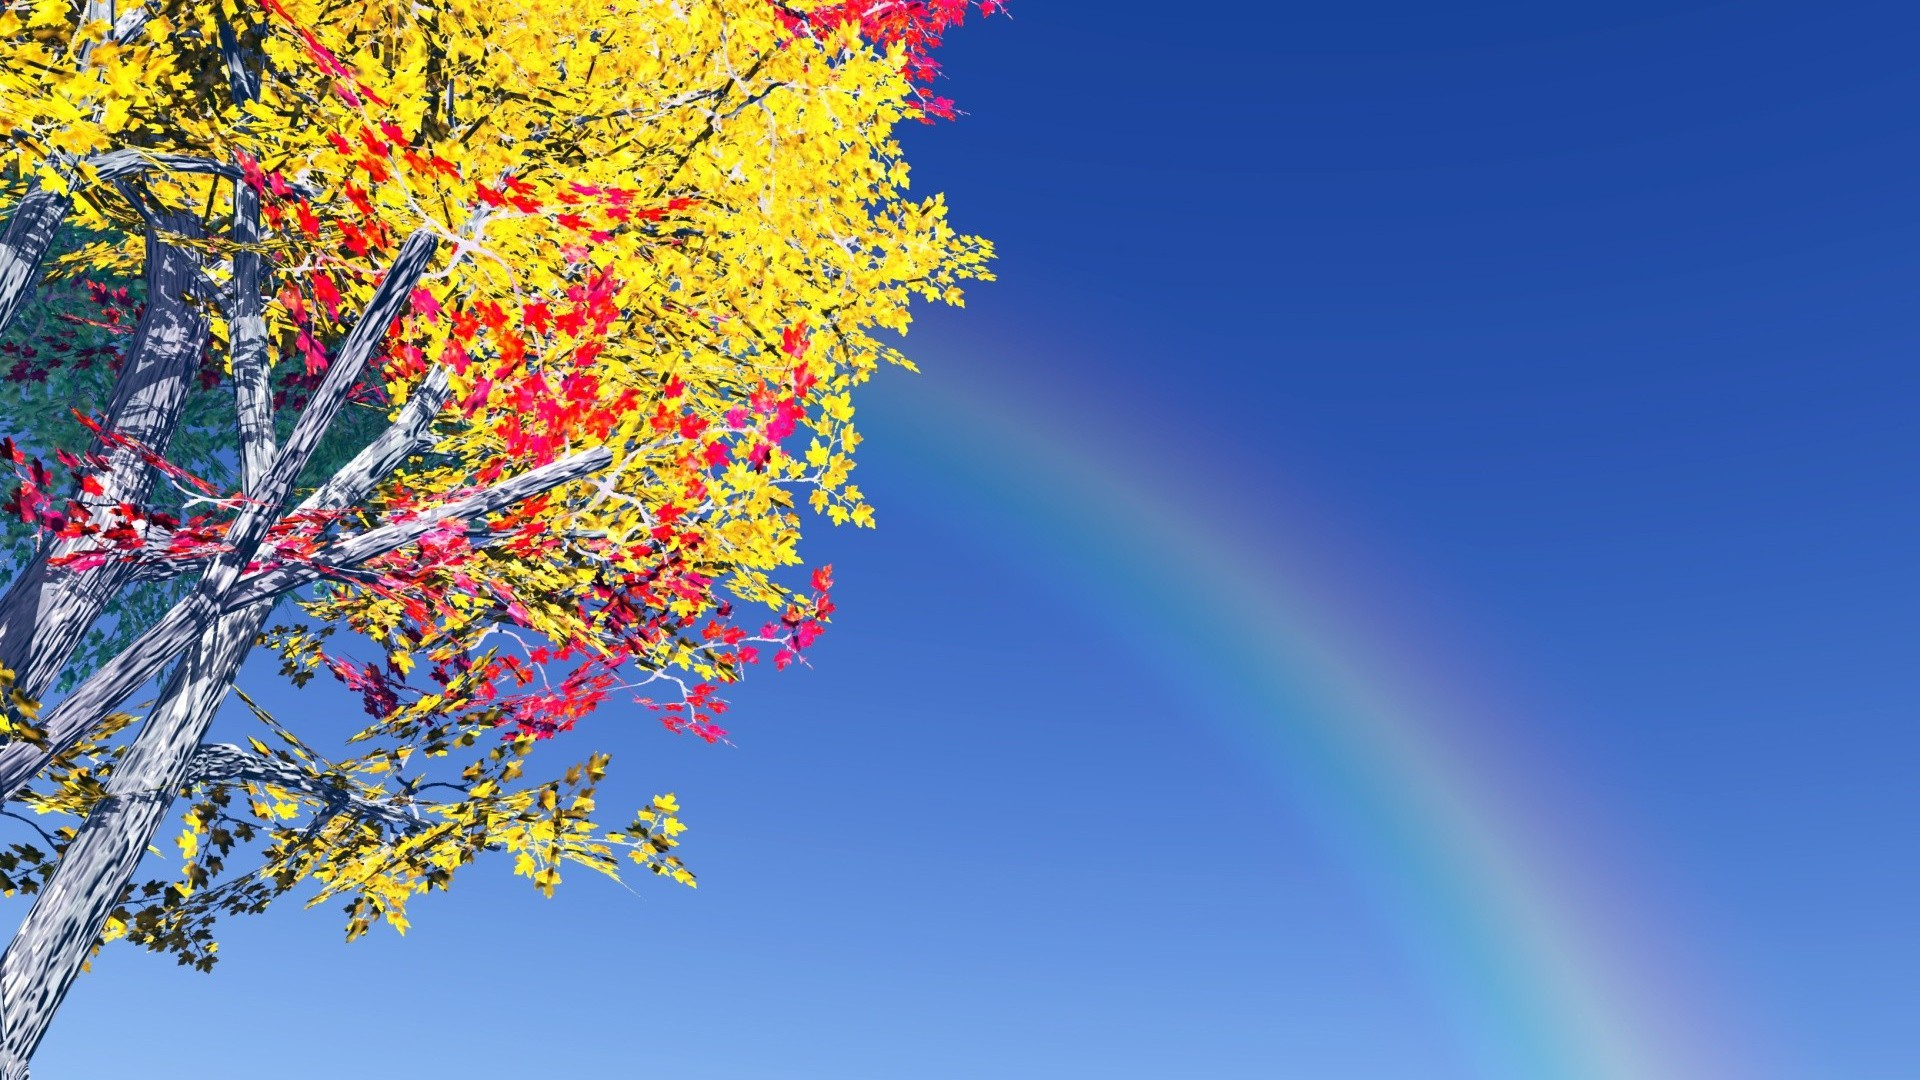 Best Iphone 5 Home Screen Wallpapers Colorful Tree And Rainbow Wallpaper Allwallpaper In